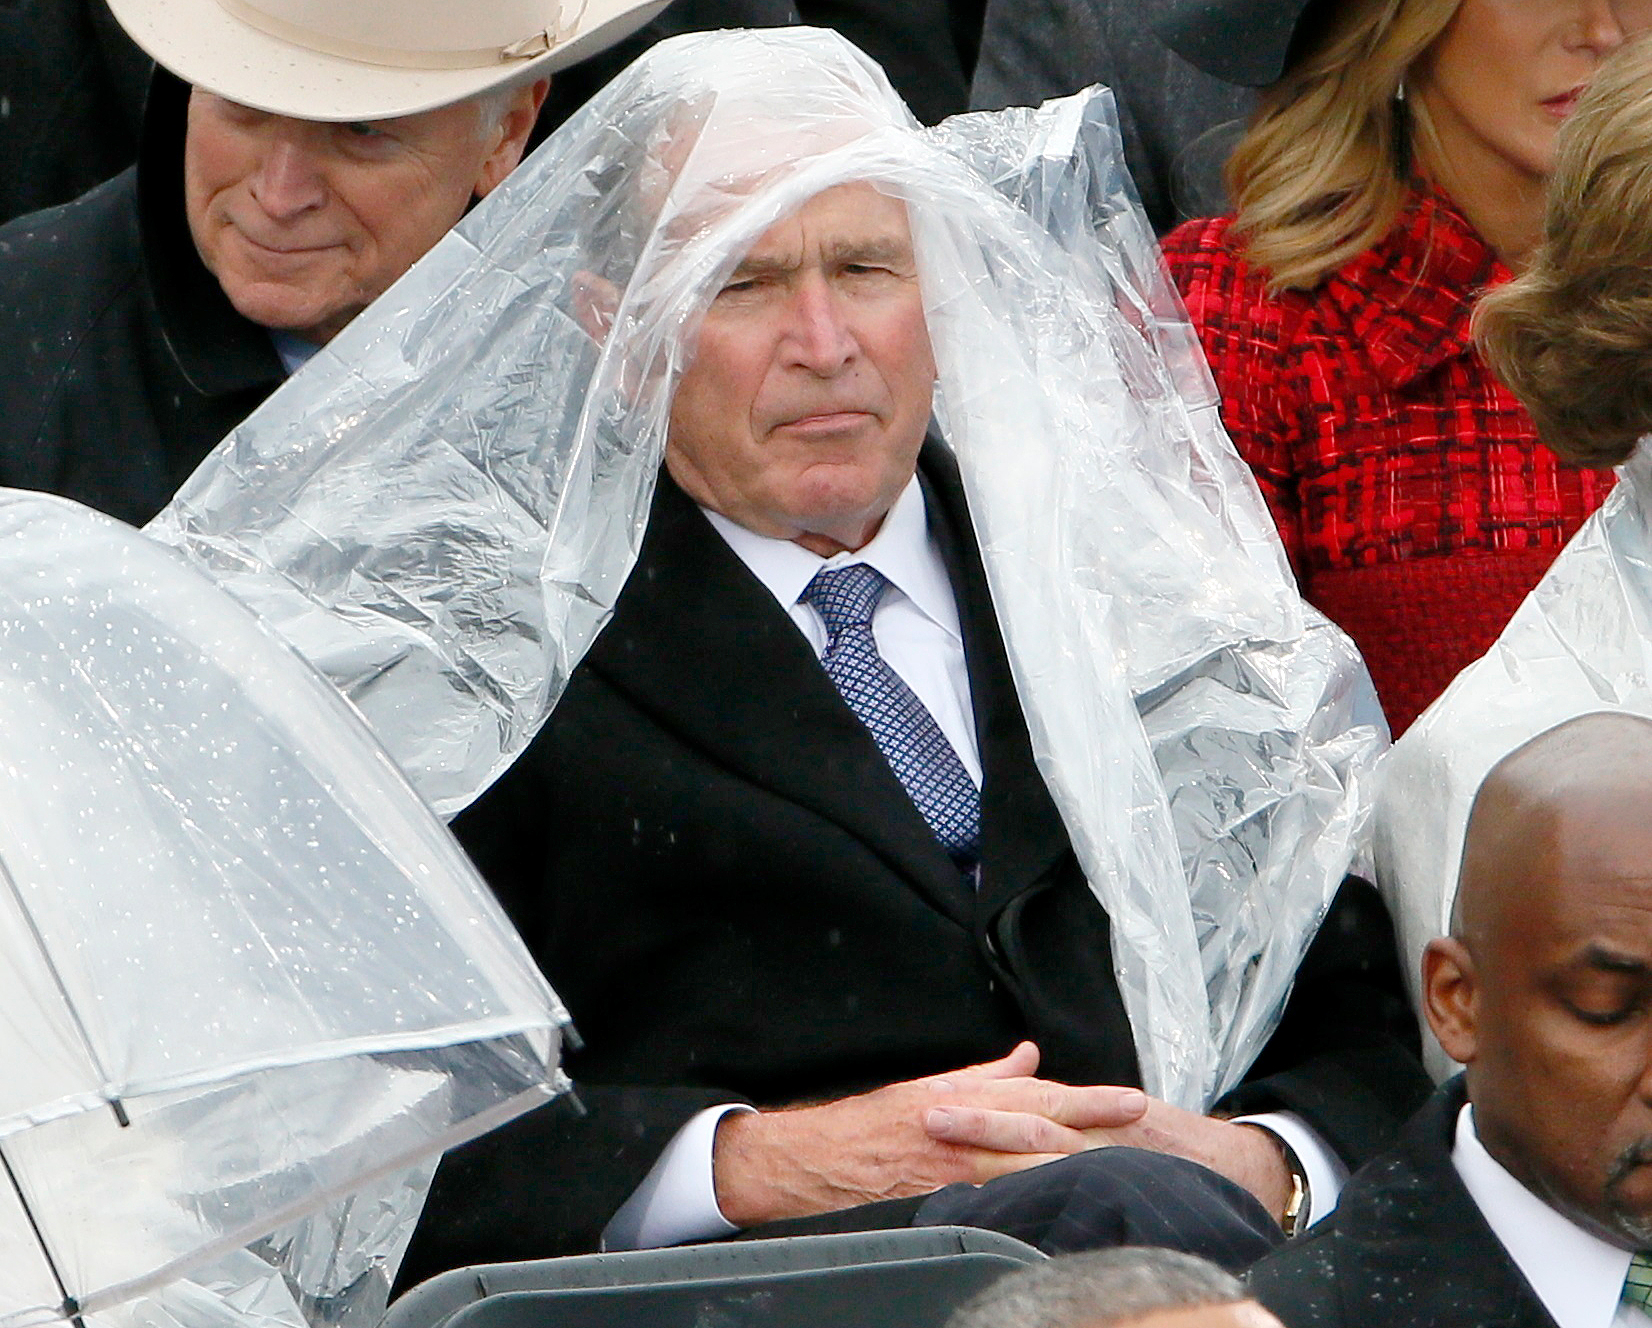 Former President George W. Bush keeps covered under the rain during the inauguration ceremonies swearing in Donald Trump as the 45th president of the United States on the West front of the U.S. Capitol in Washington, U.S., January 20, 2017.